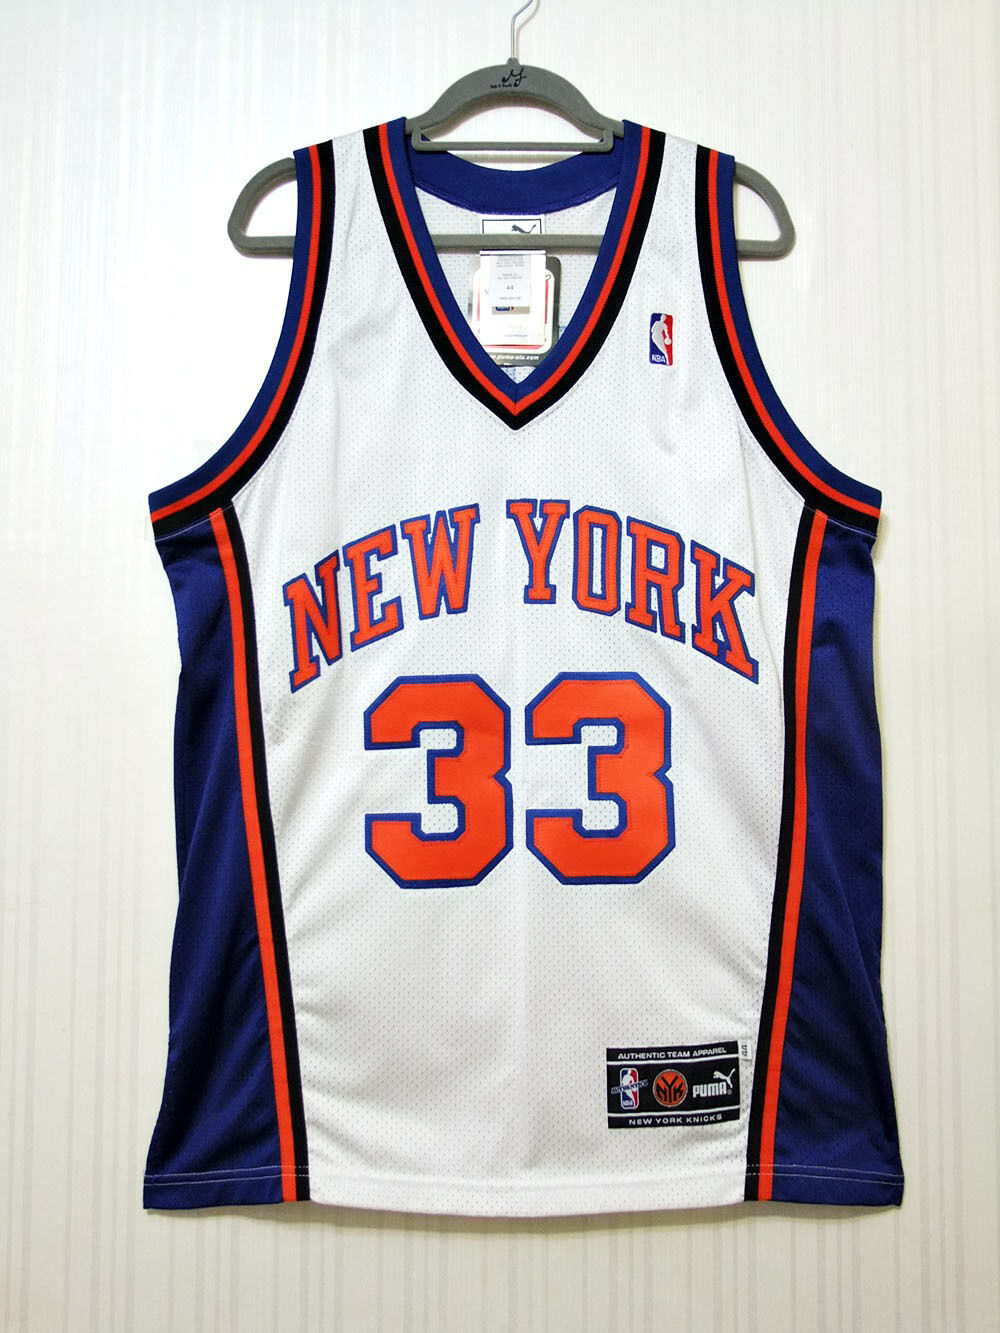 Patrick Ewing 2000 New York Knicks Puma Authentic Home Jersey Size 44 NWT